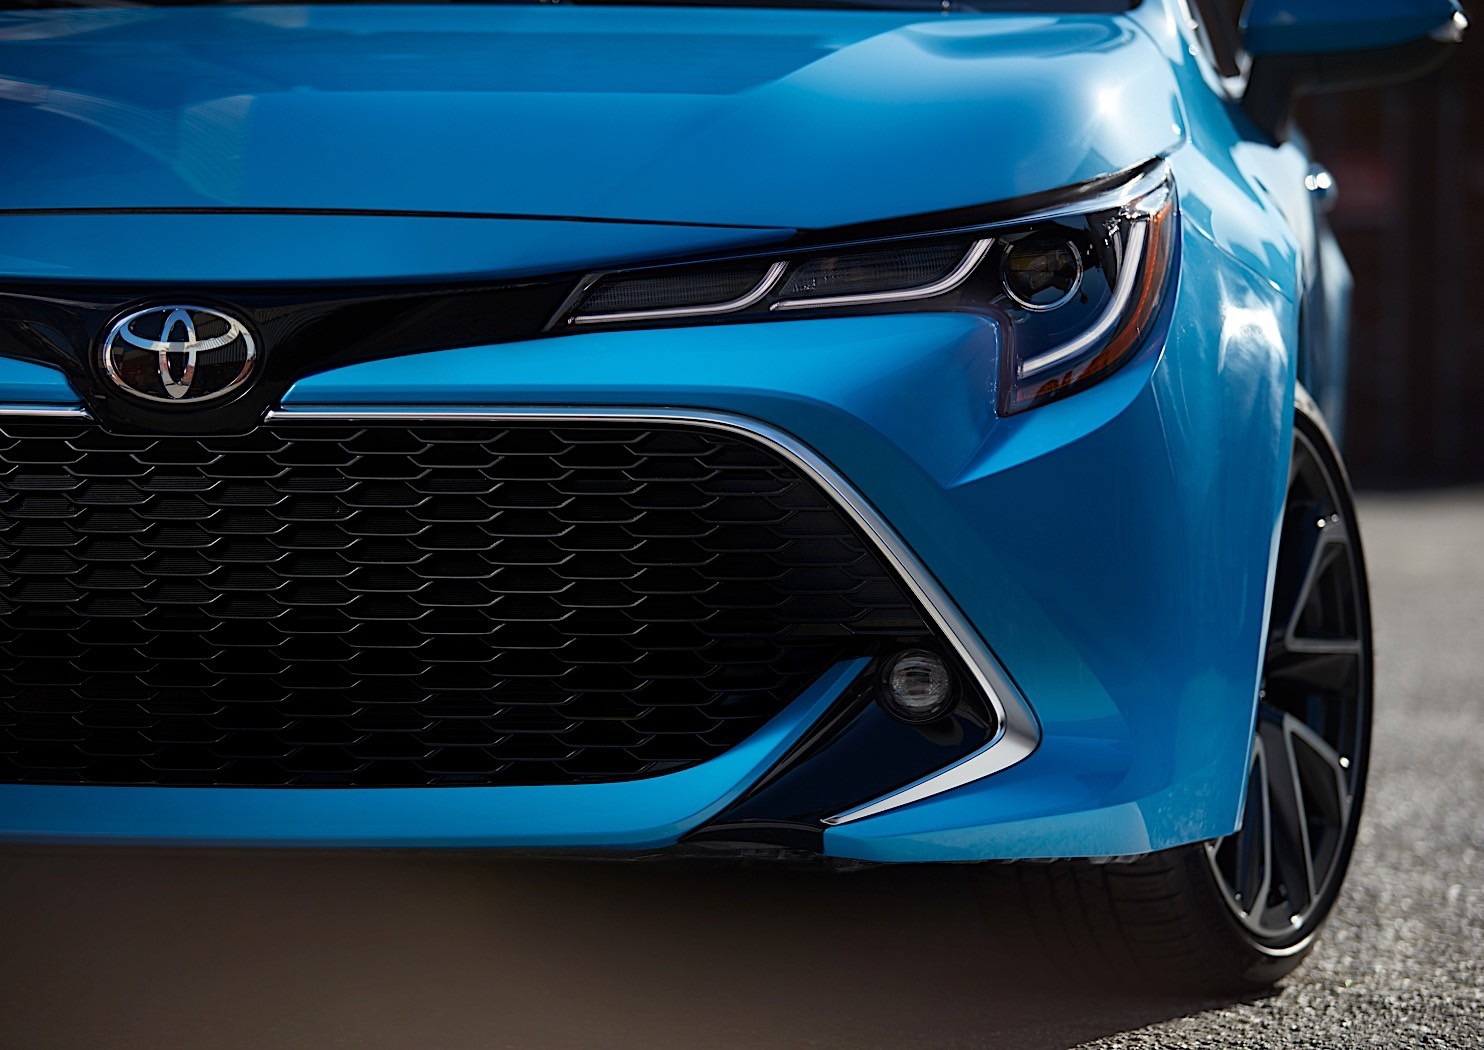 2019 Toyota Corolla Hatchback Arrives In North America At NYIAS